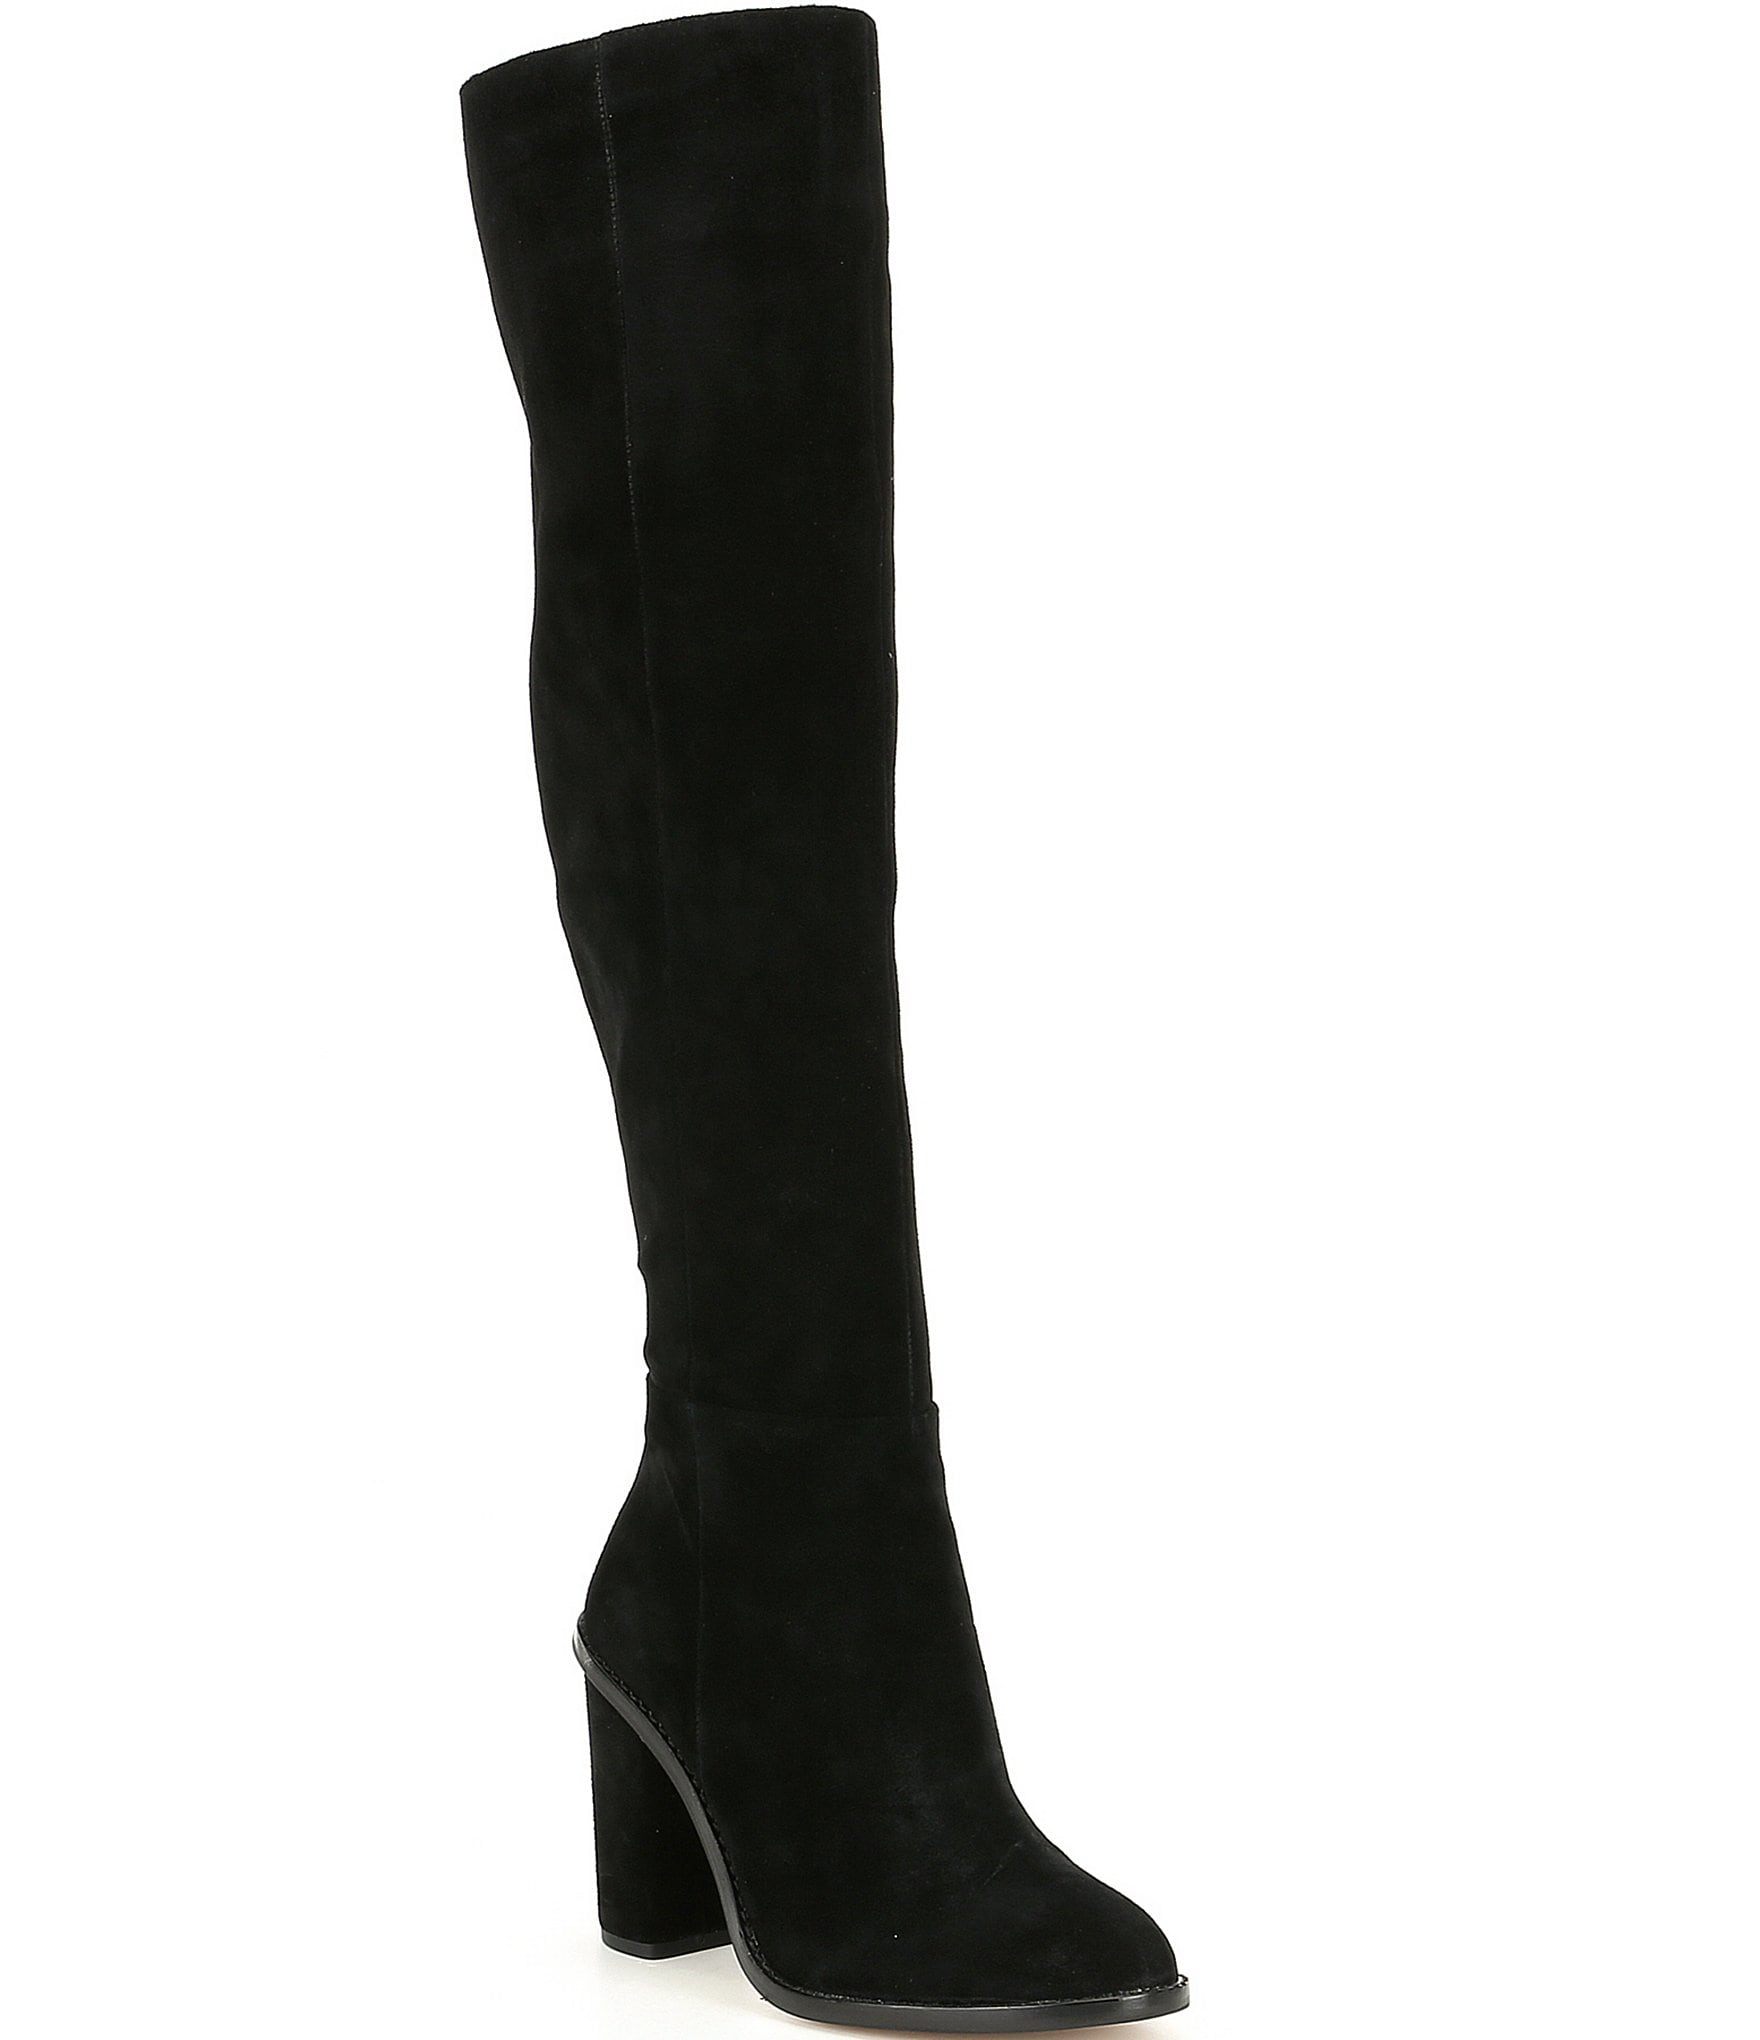 1b9fa9a7690 Gianni Bini Barrine Suede Over the Knee Boots